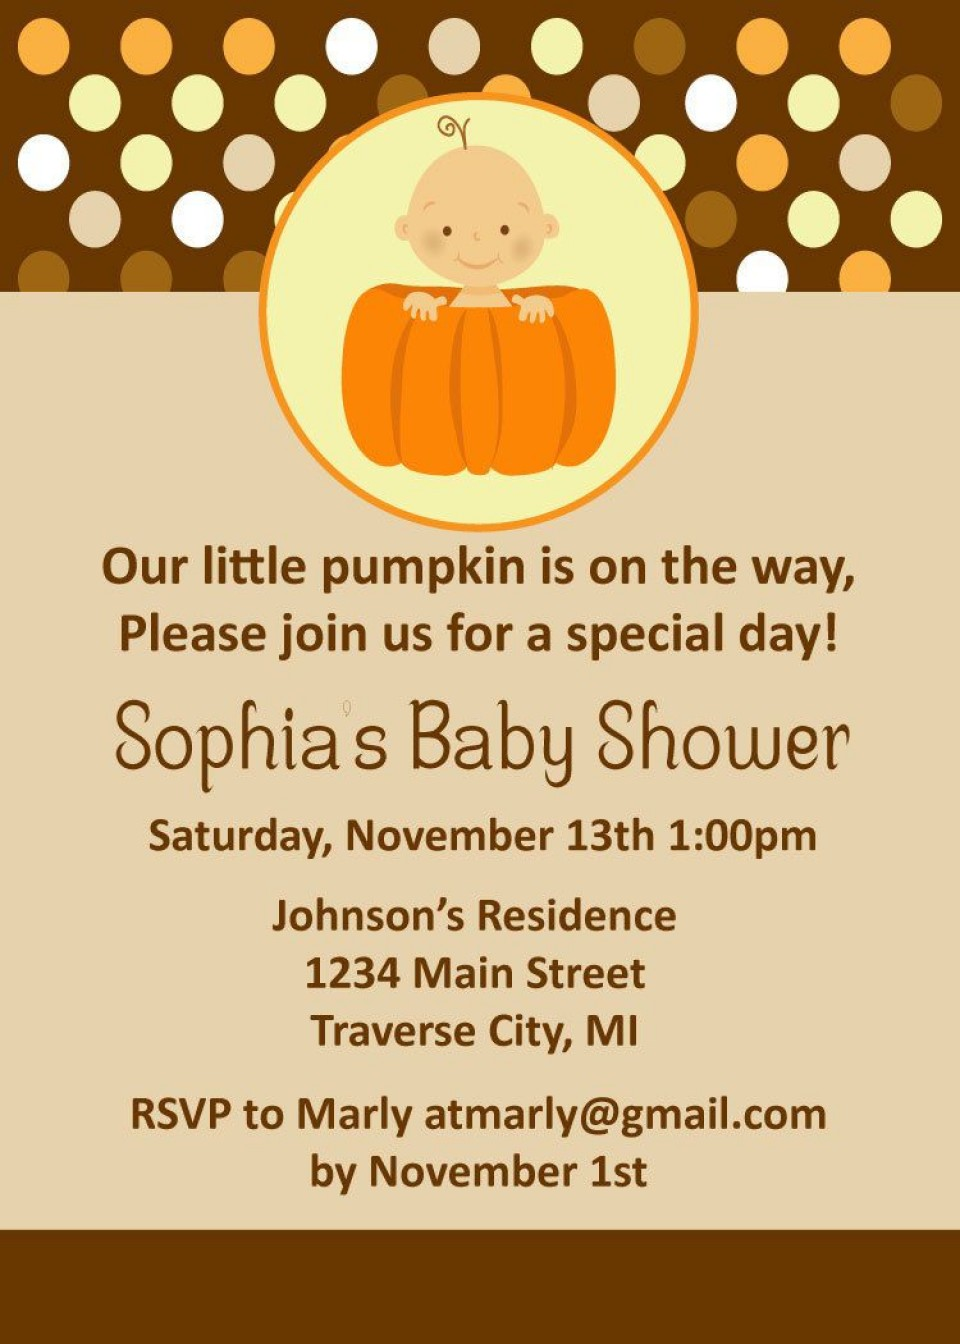 008 Striking Baby Shower Invitation Girl Pumpkin Image  Little960